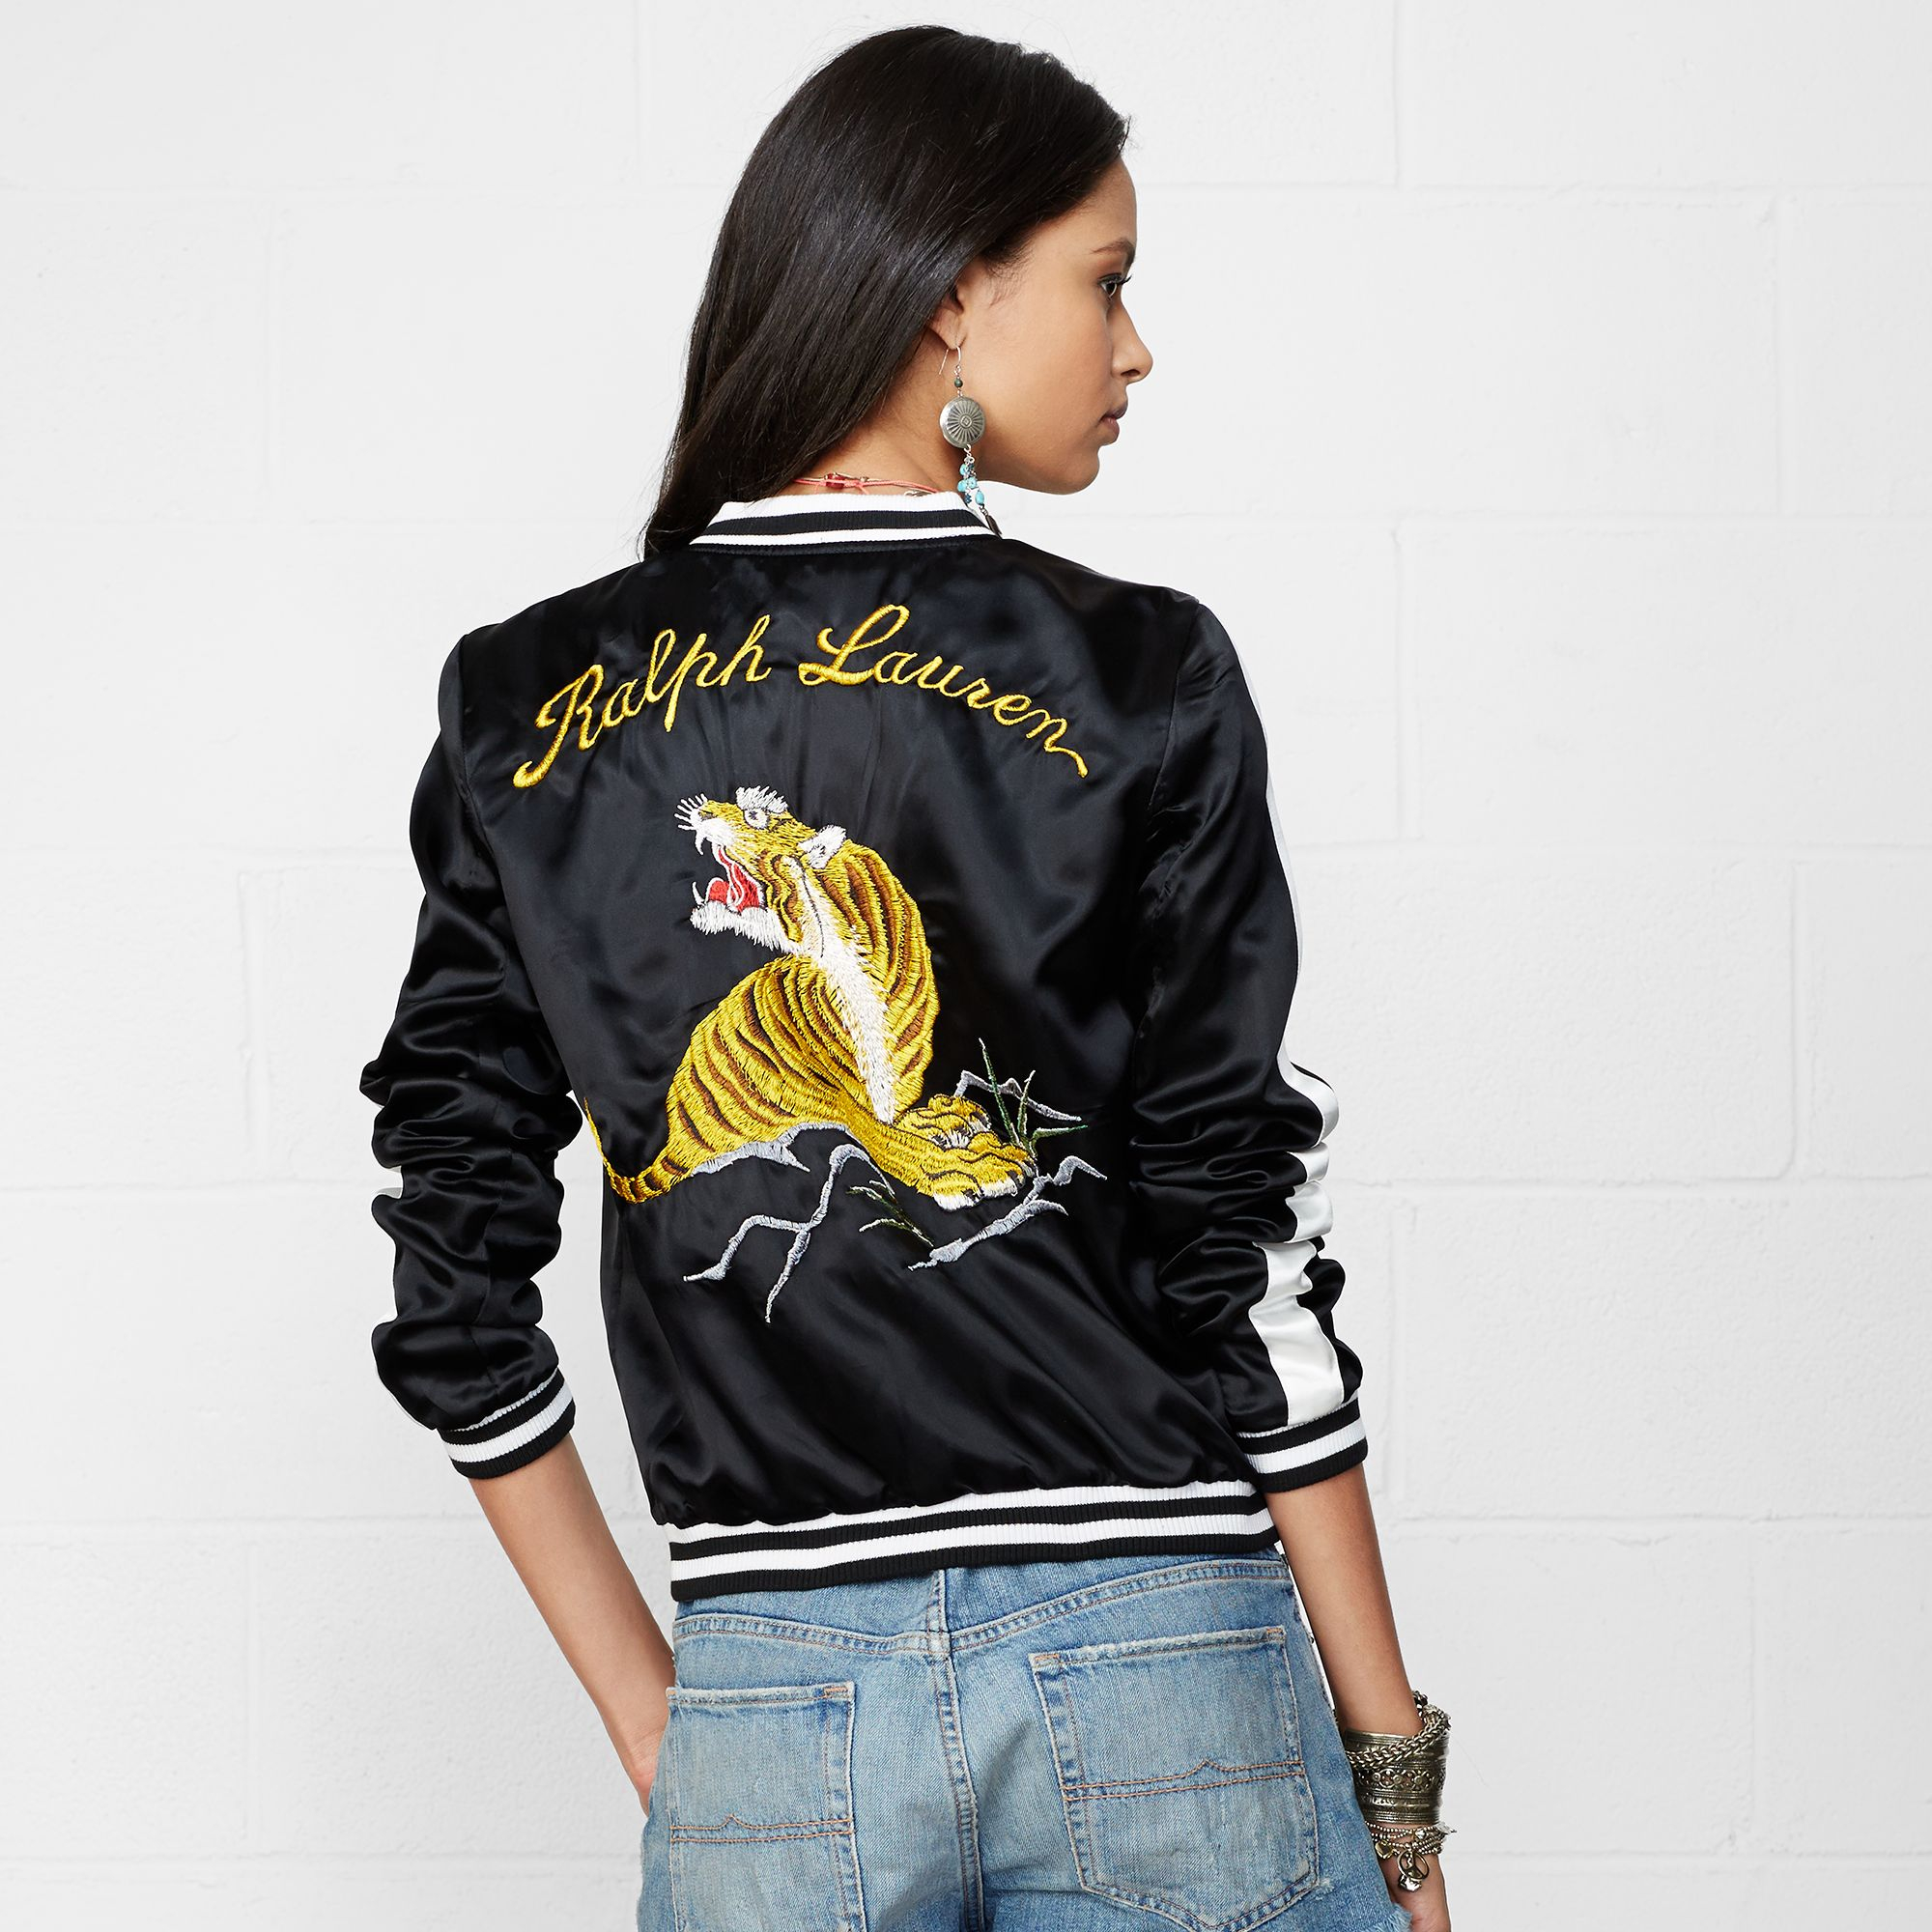 Versace City Lights Embroidered Jacket for Women   Versace Online